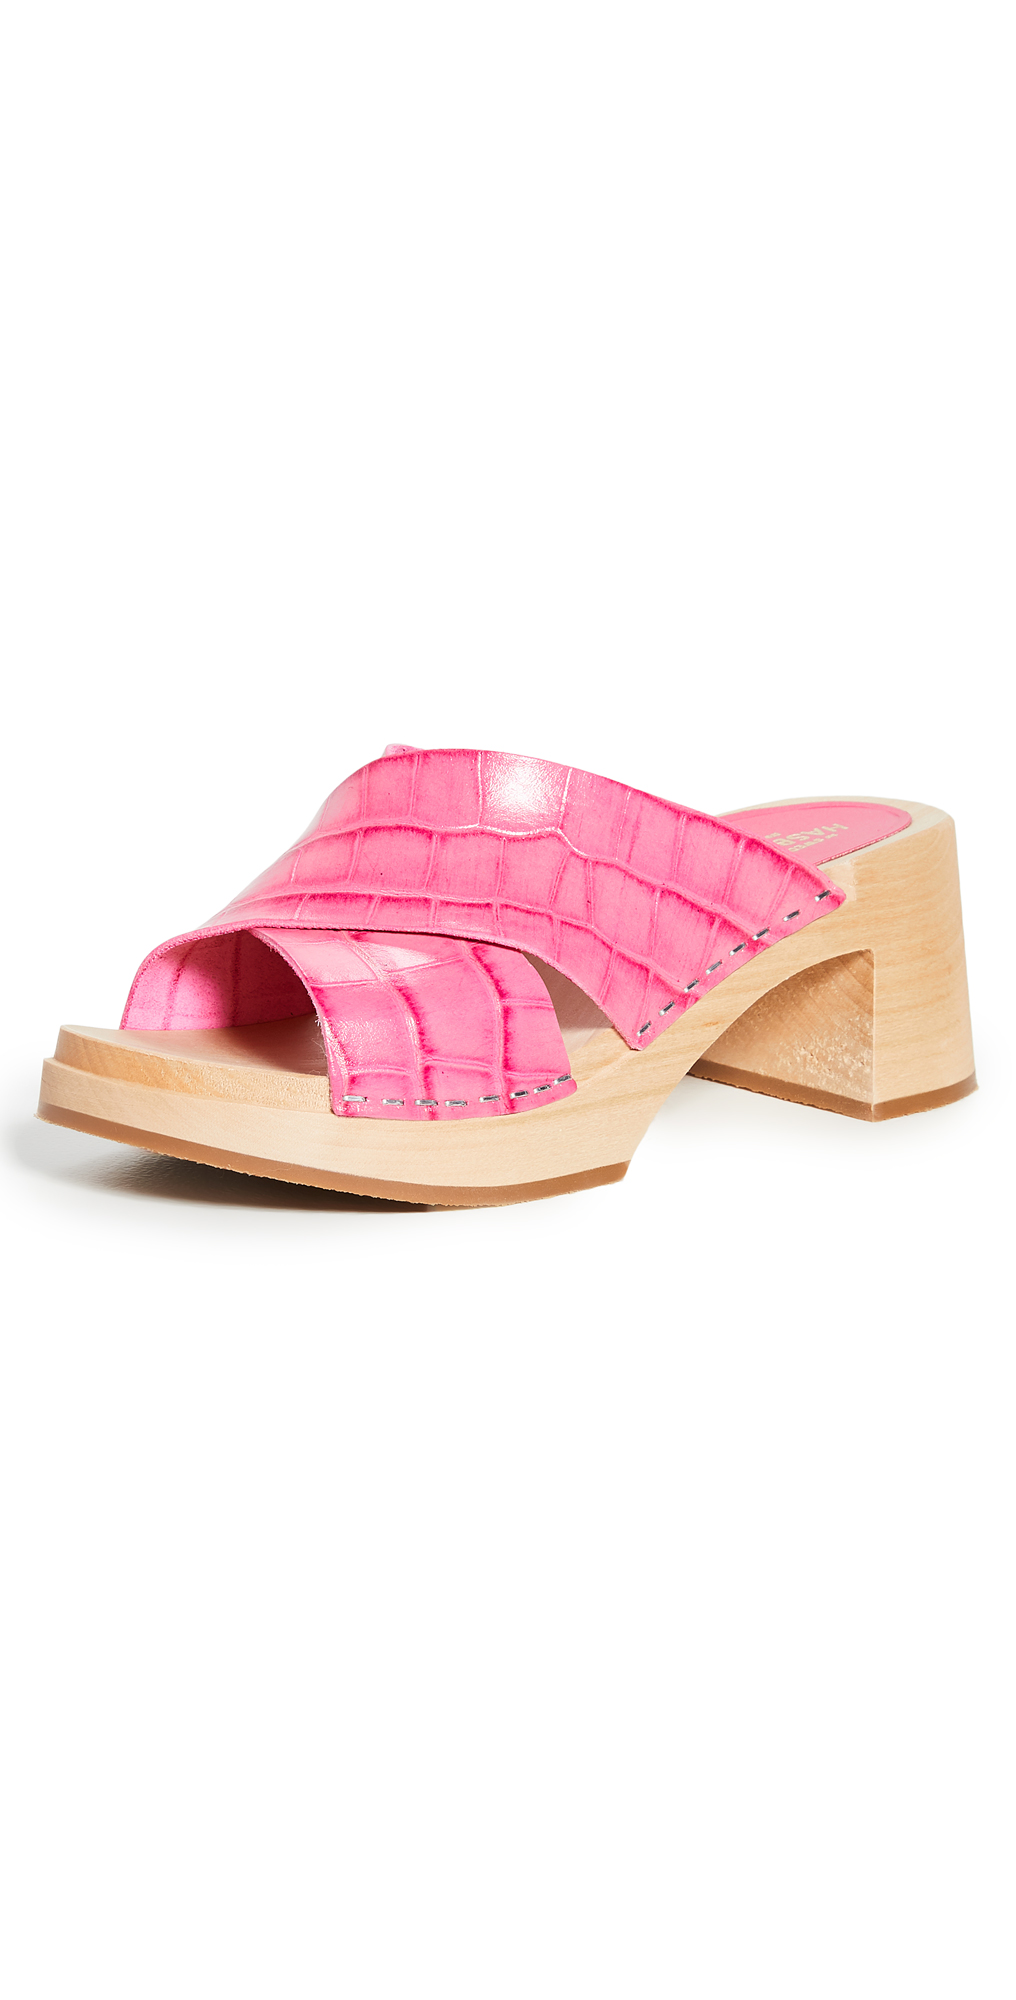 Swedish Hasbeens Sandals ANETTE HIGH CLOGS